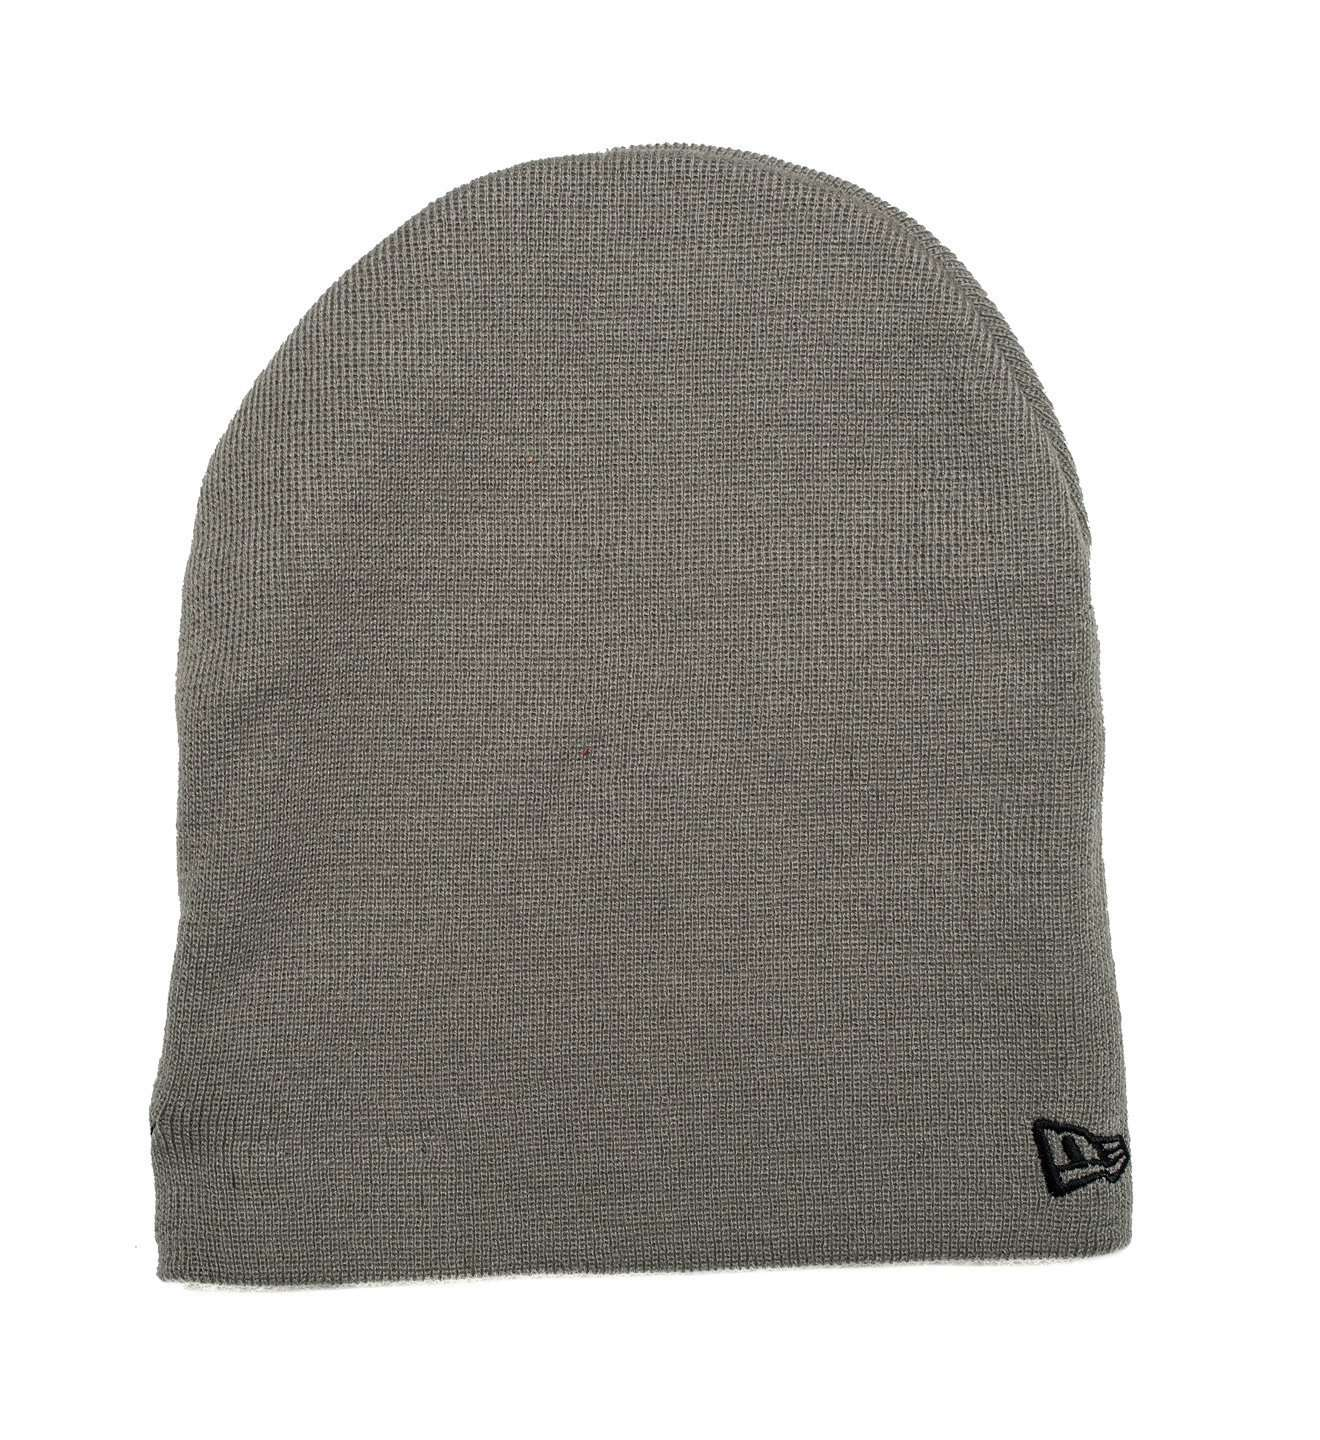 Standard Issue Beanies - Sullen Art Co.